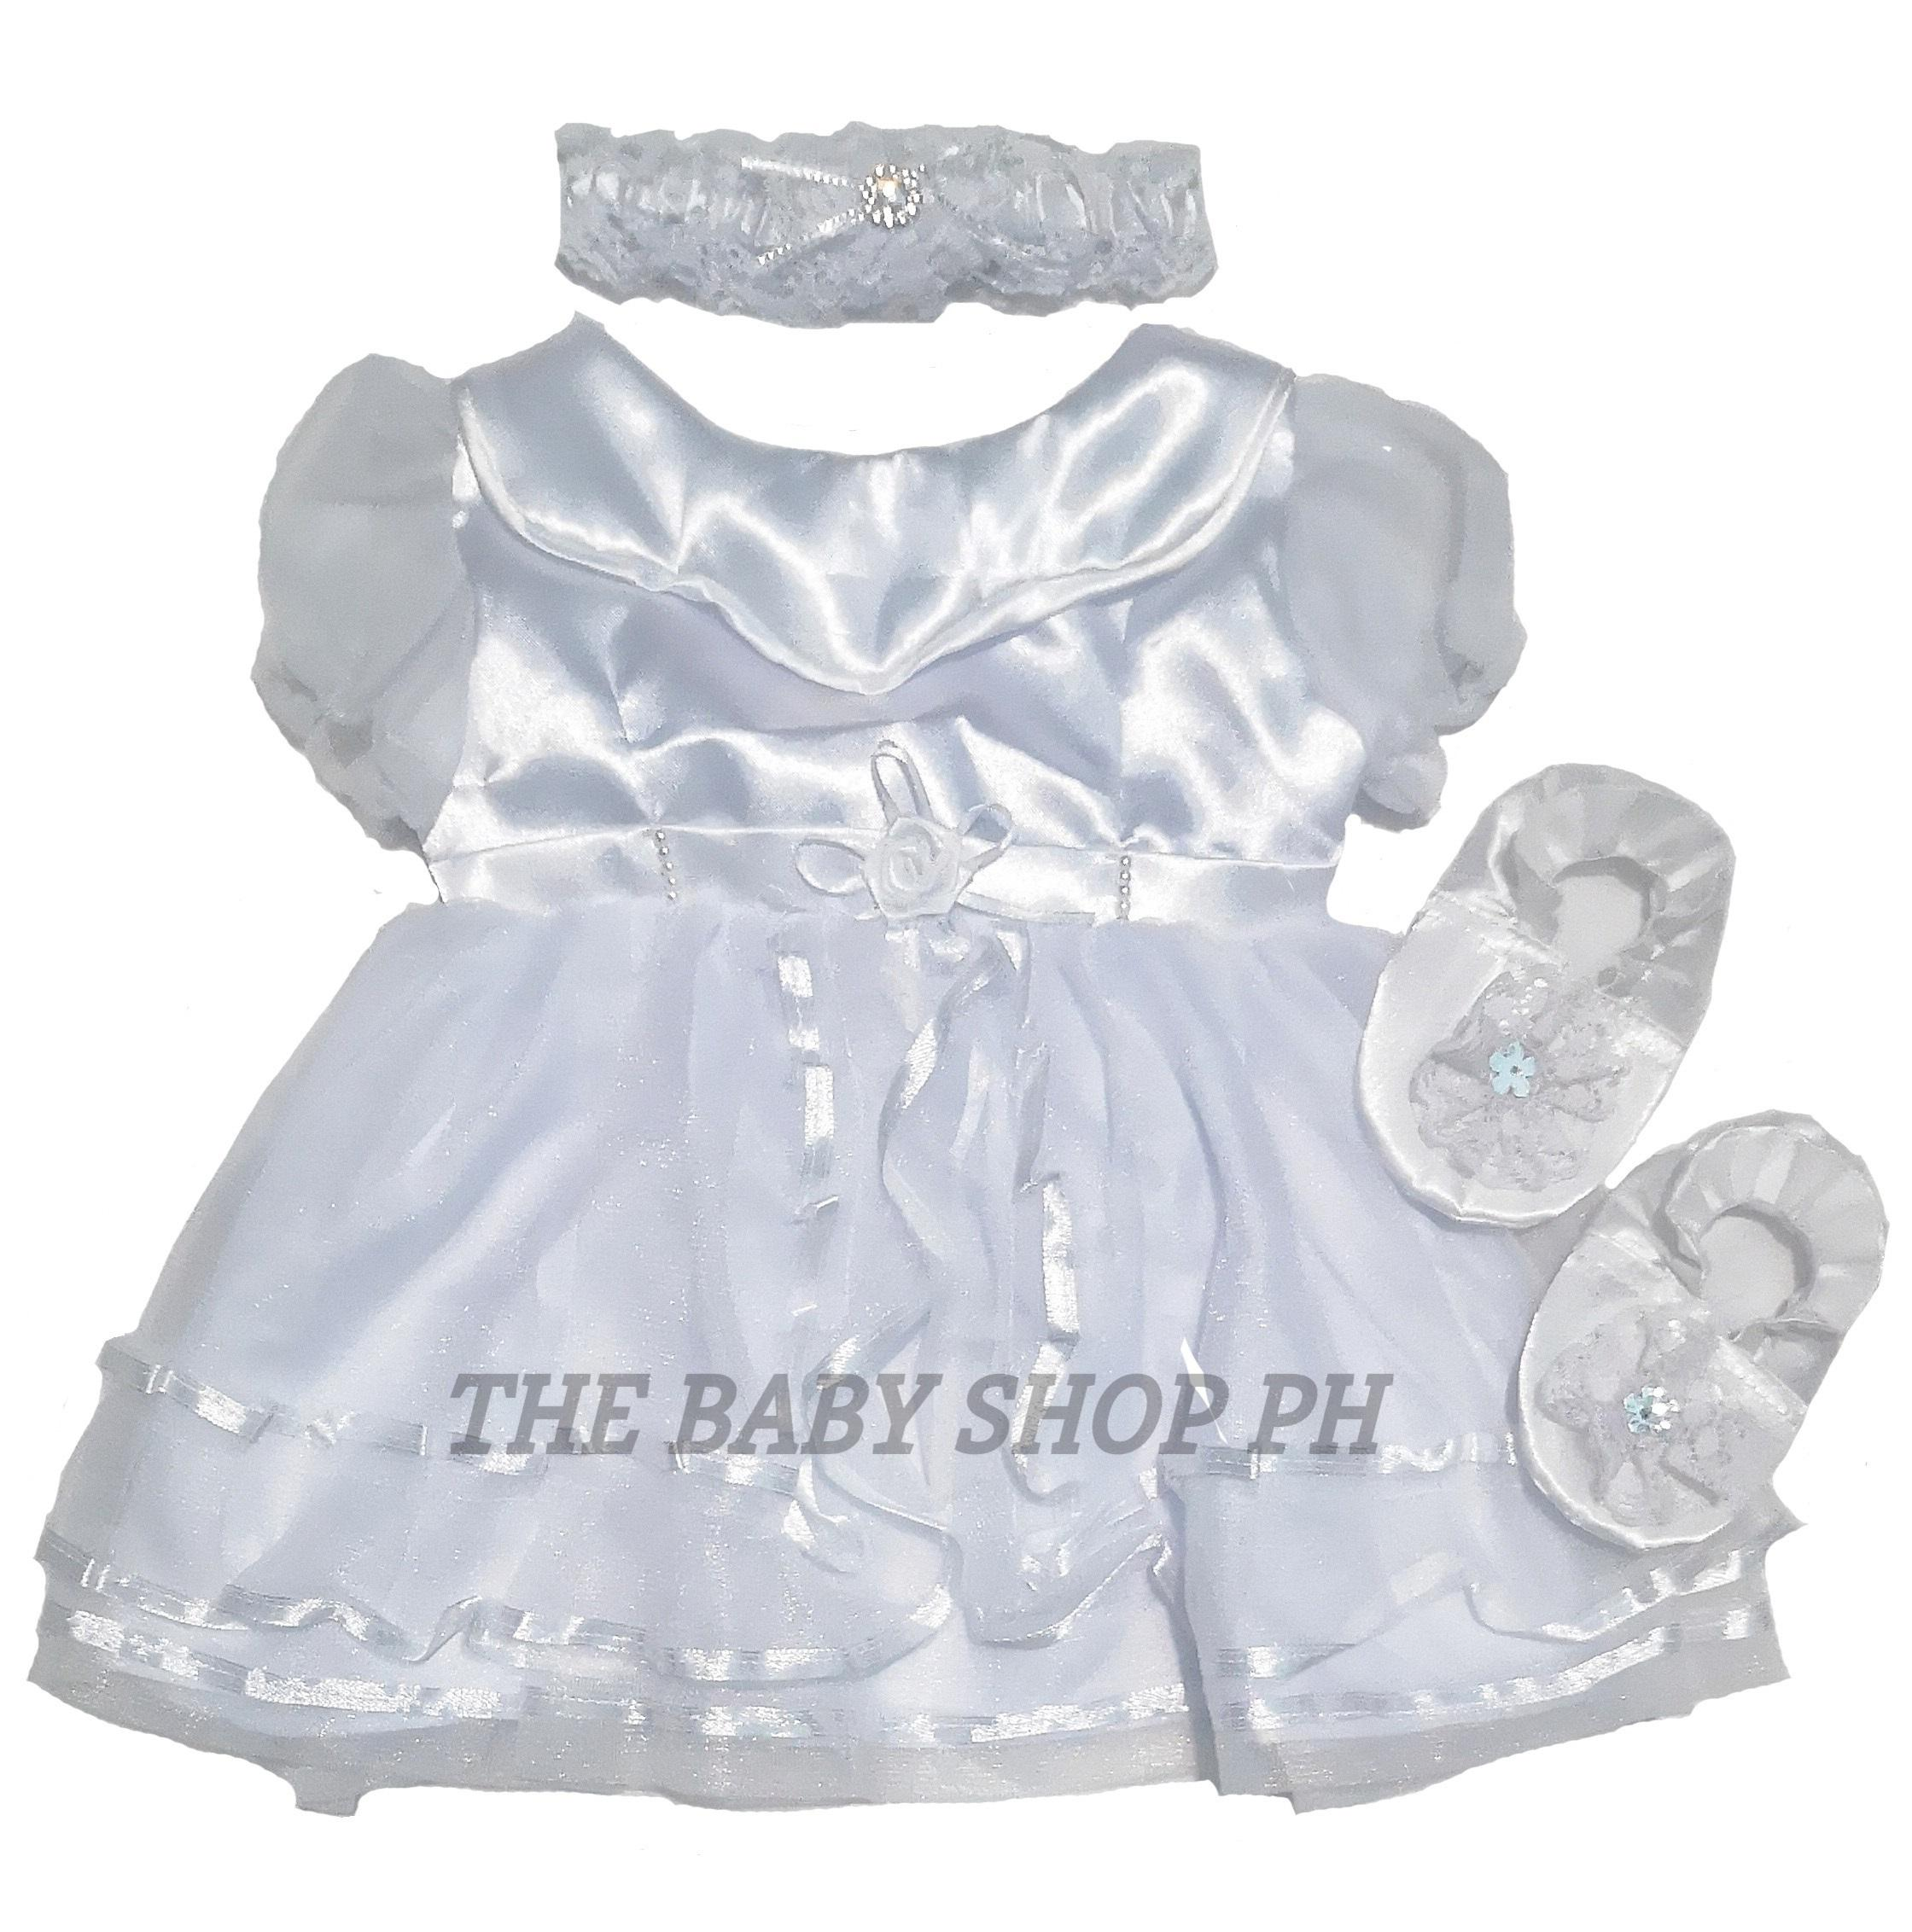 THE BABY SHOP PH Baptismal Christening Dress Snow White Style with Collar  and Puffed Sleeves For Baby Girl (White, Touch of Pink and Cream)